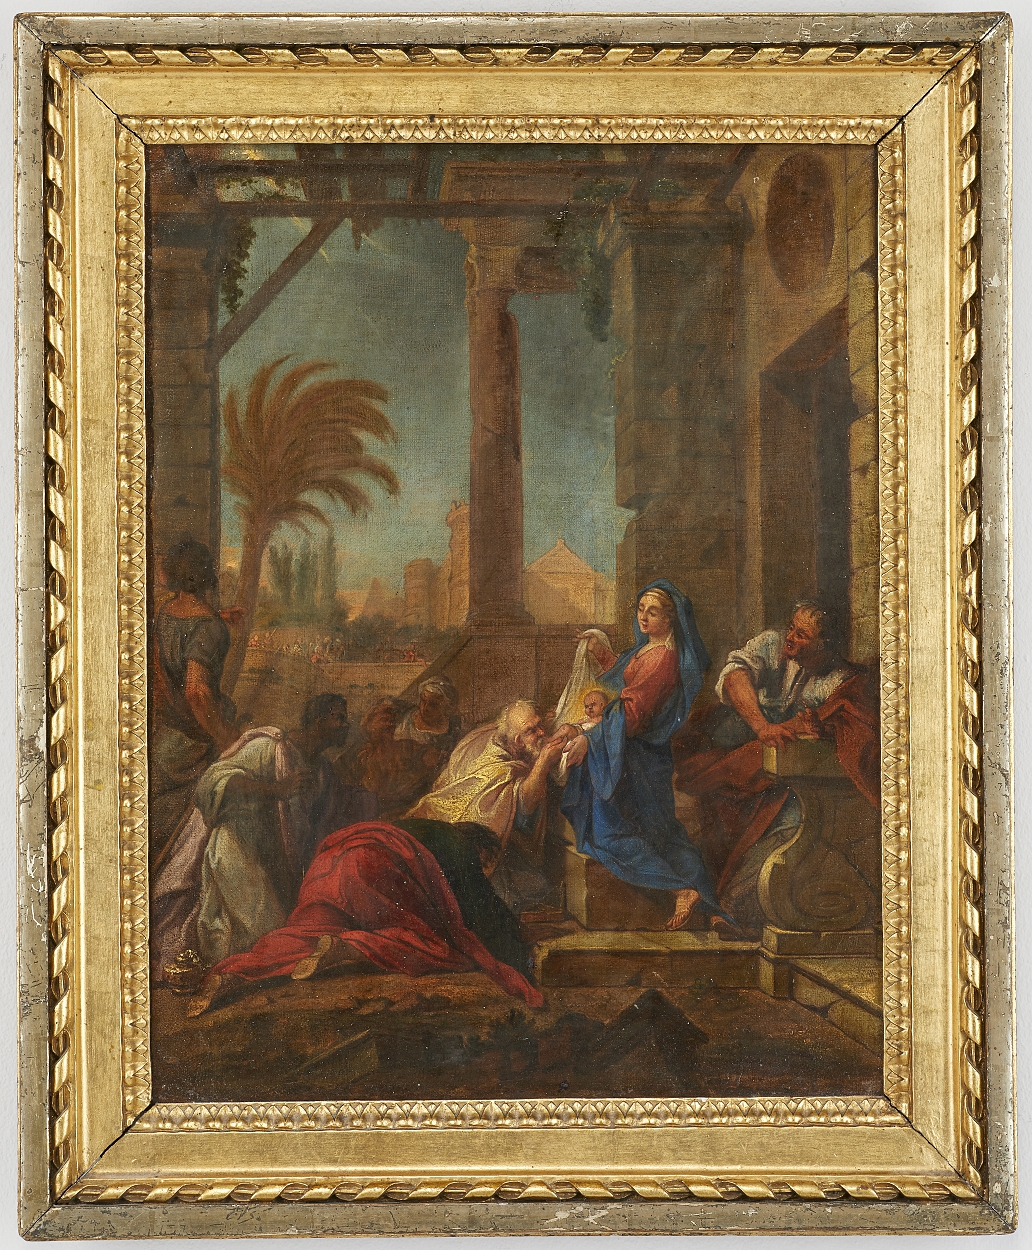 circle of Louis de Boullogne, The Adoration of the